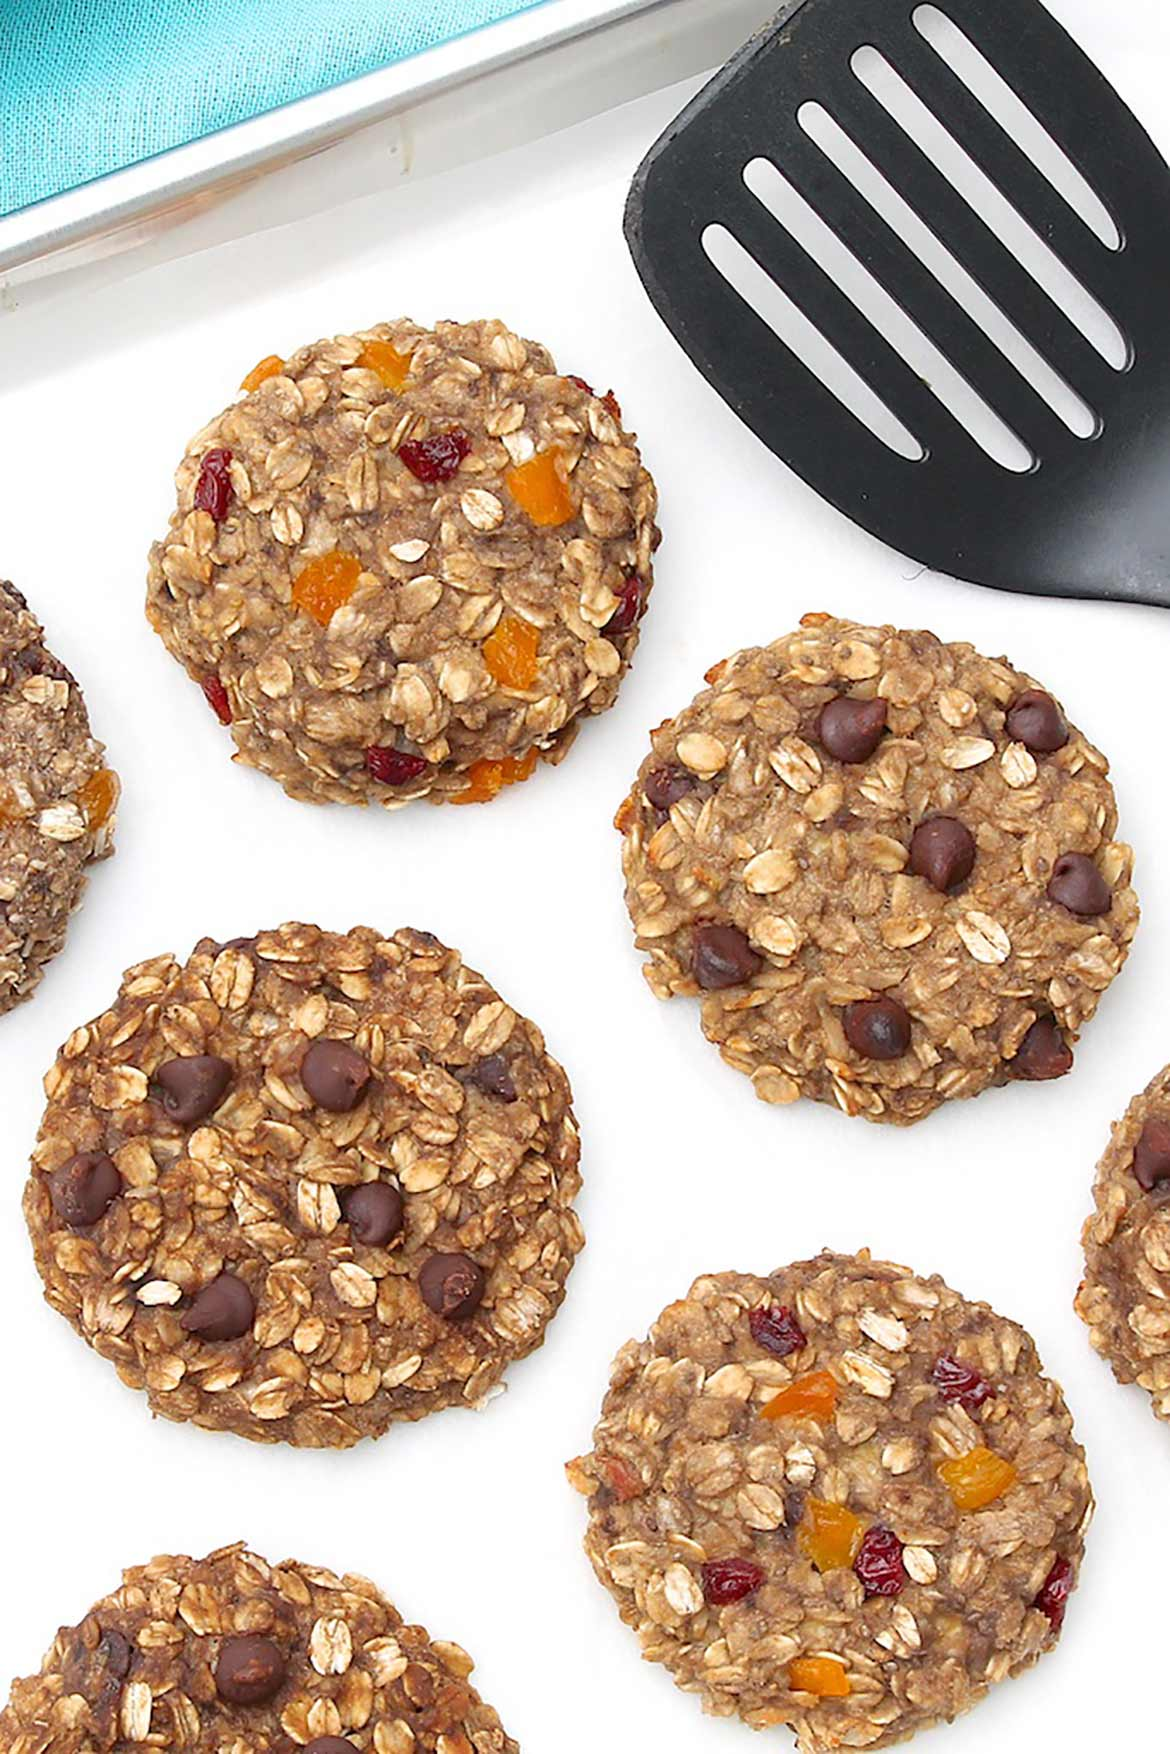 An ideal way to use overripe bananas, these wholesome cookies mix up in a minute or two in a single bowl, and a variety of optional add-ins allows them to be customized according to personal preference.